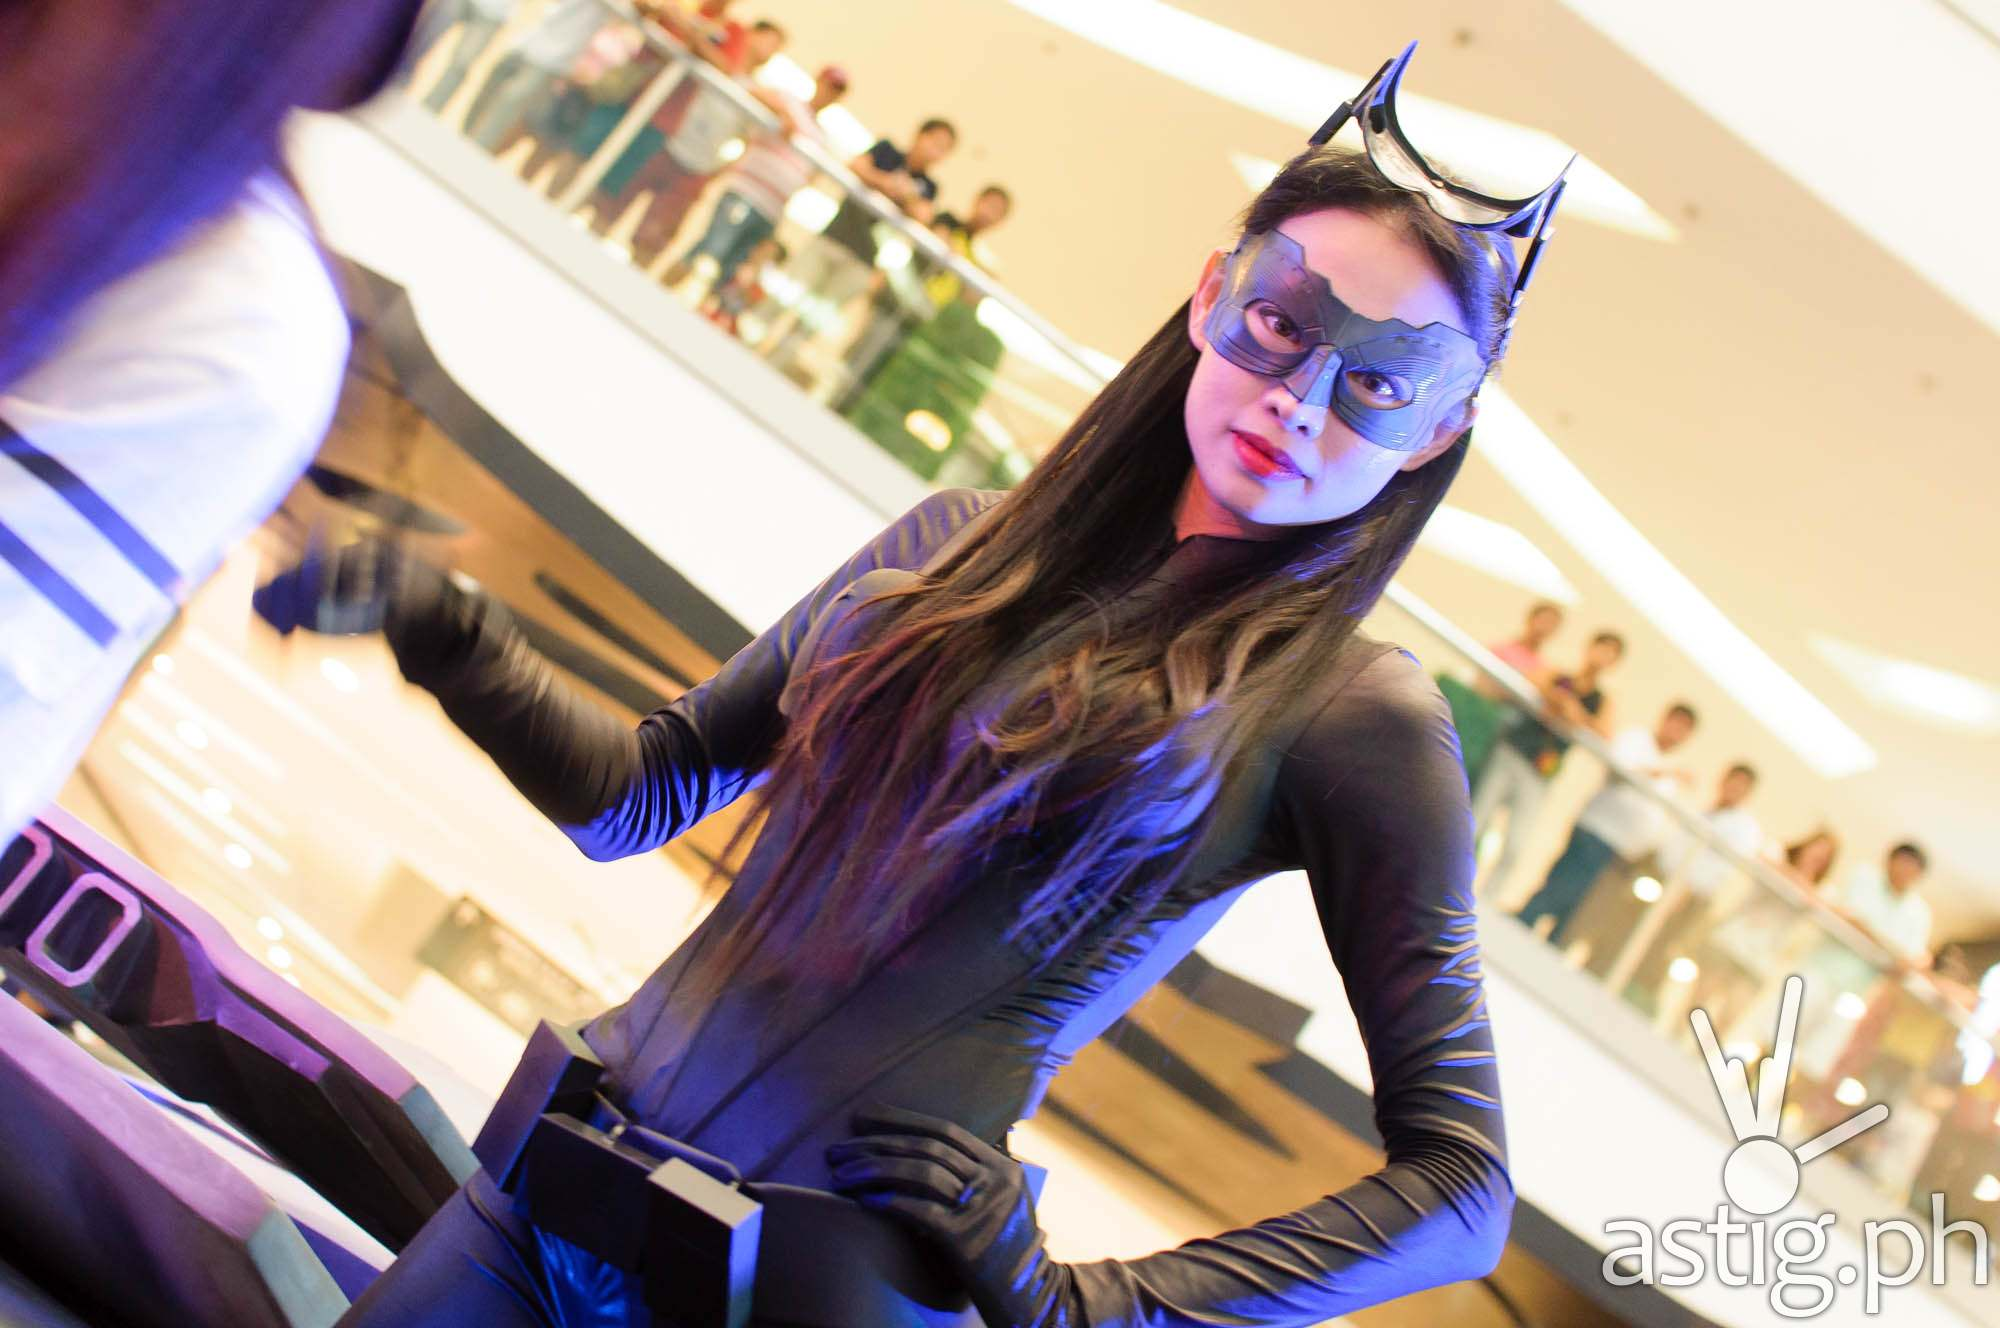 Oh hey it's Catwoman! Can you say R-A-W-R?